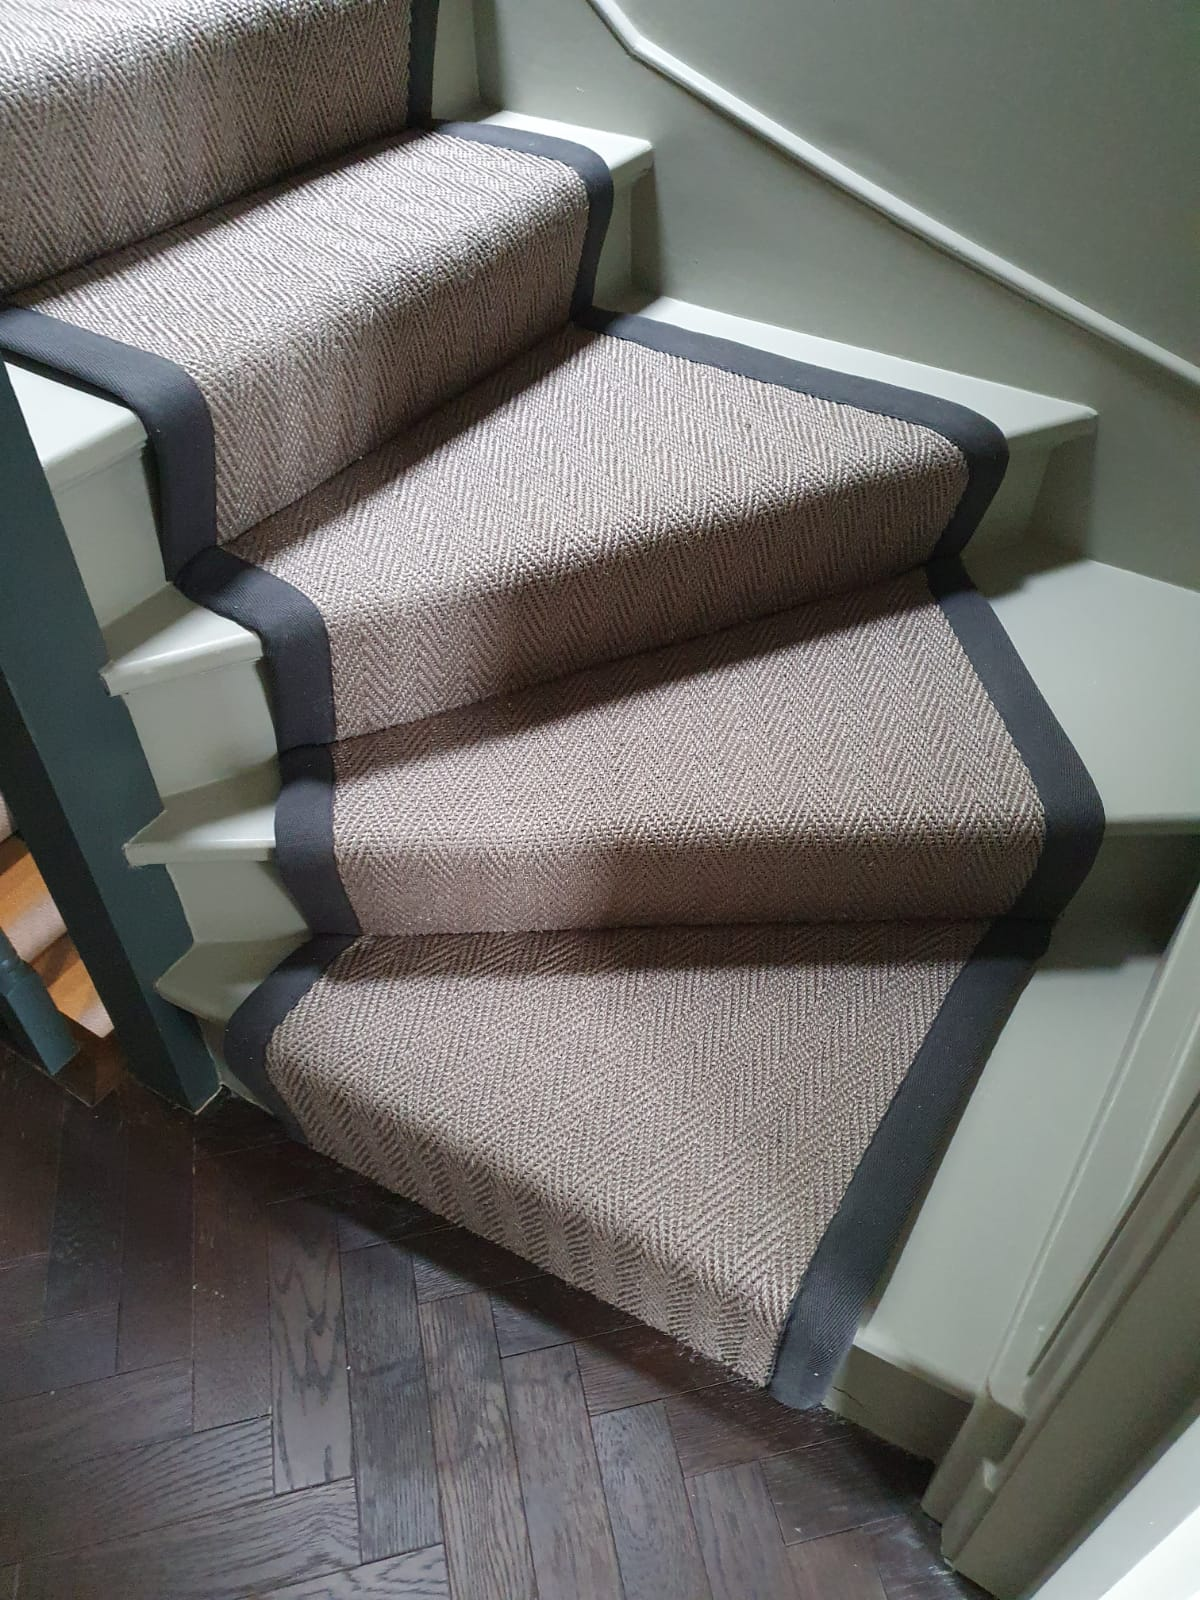 Hammer Carpets Natural Line in Acton 1